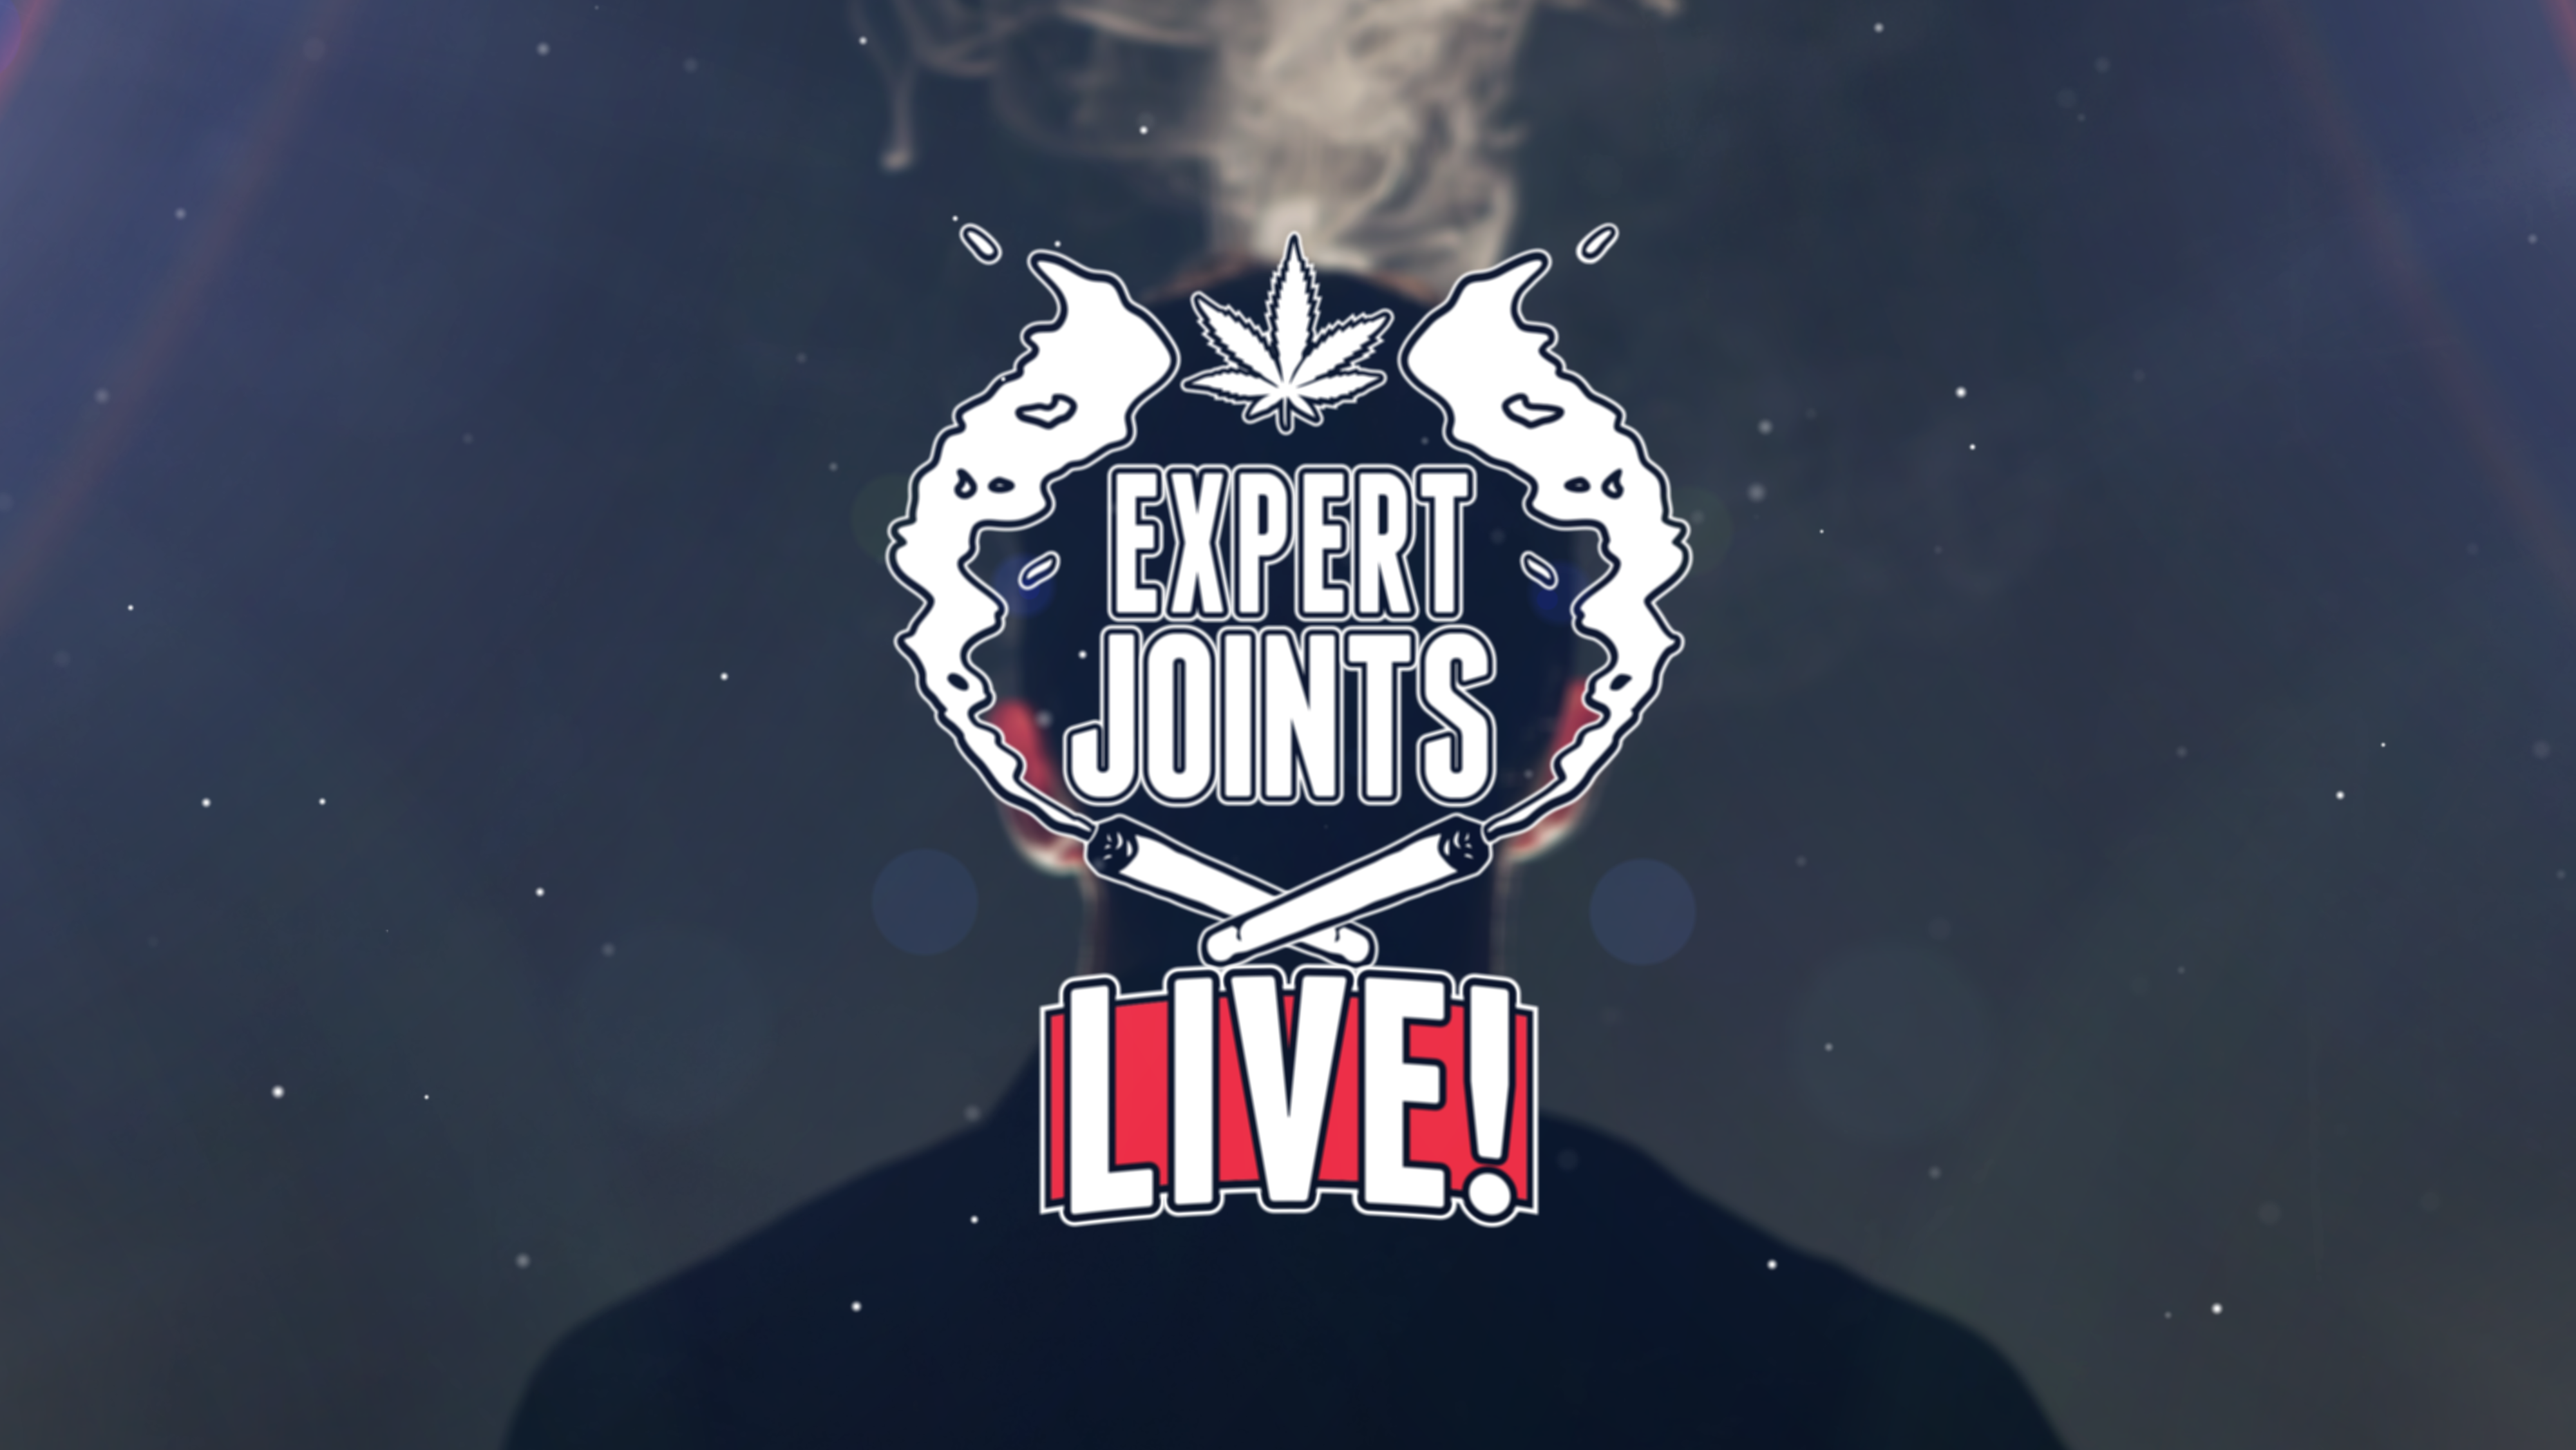 expert joints live